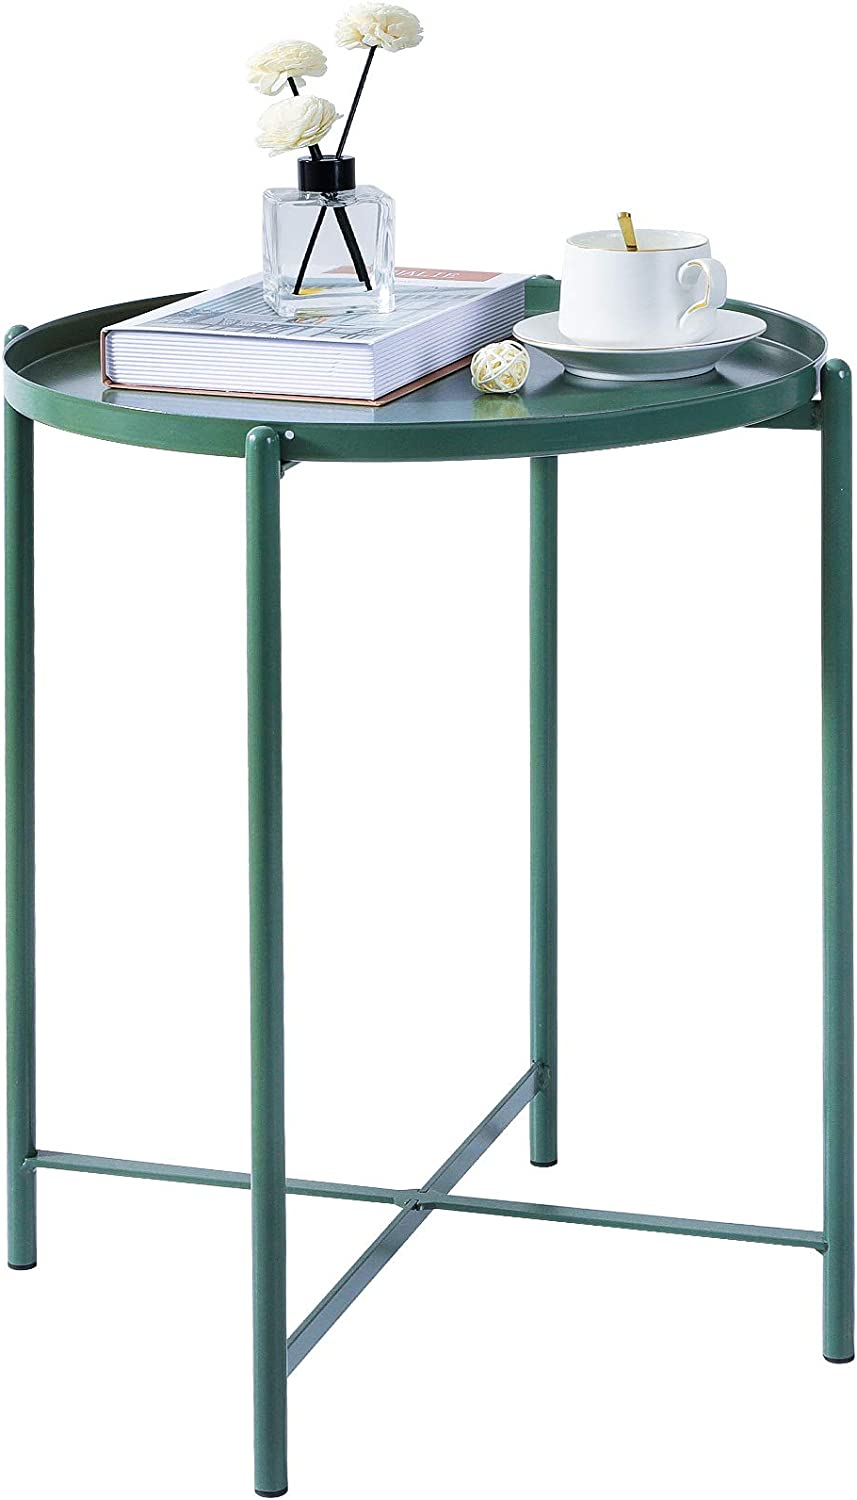 Haton End Table, Folding Metal Side Table, Waterproof Round Accent Table with Anti-Rust Matte Surface, Sofa Tea Coffee Table with Removable Tray for Living Room, Bedroom, Balcony, 16.6 x 20.7 Inch: Kitchen & Dining